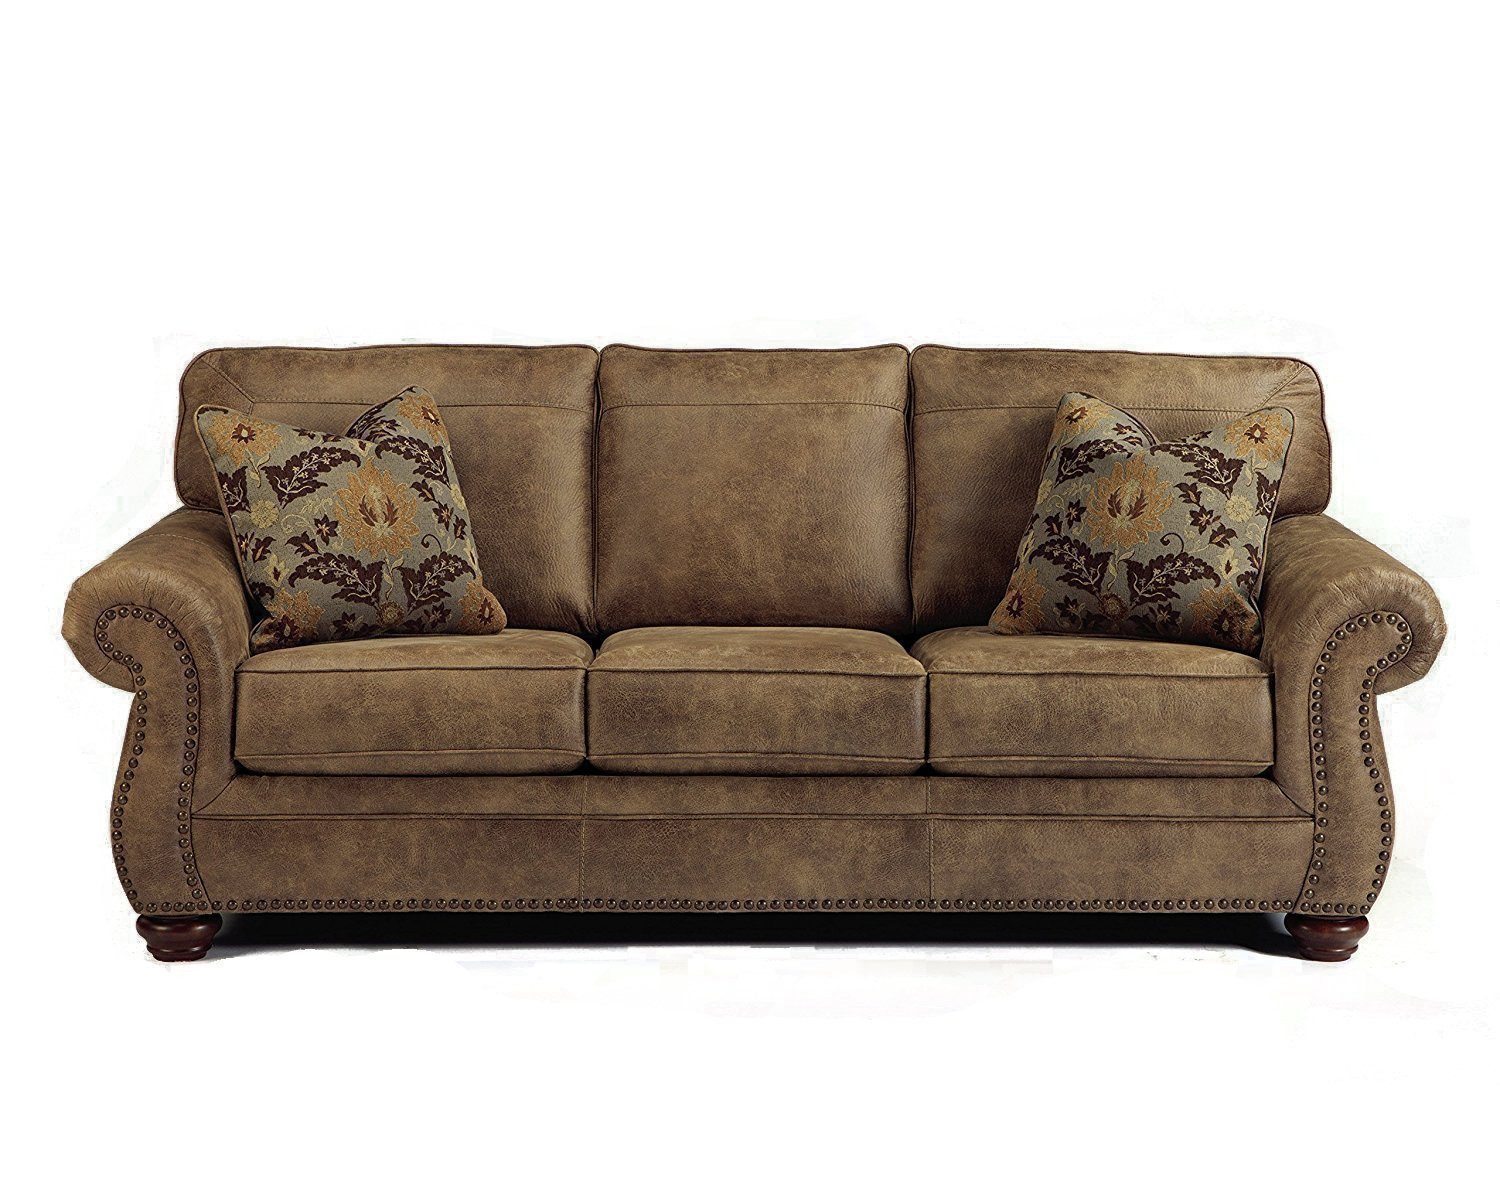 Signature Design By Ashley Larkinhurst Sofa Home Furniture Design